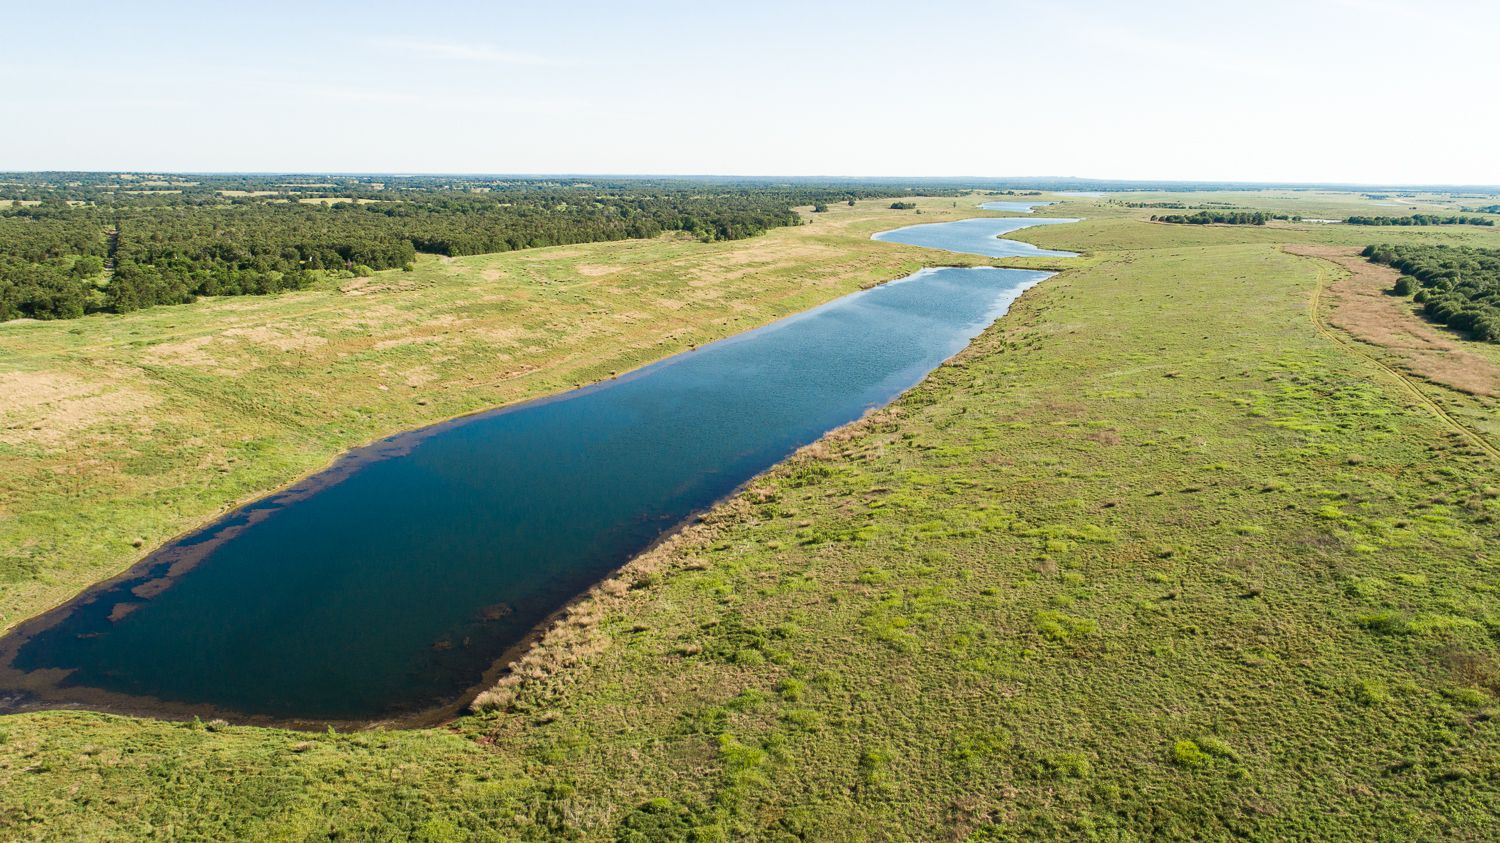 One of the 14 deep-water lakes in the Sandow Lakes Ranch site, which is up for sale for $250 million.